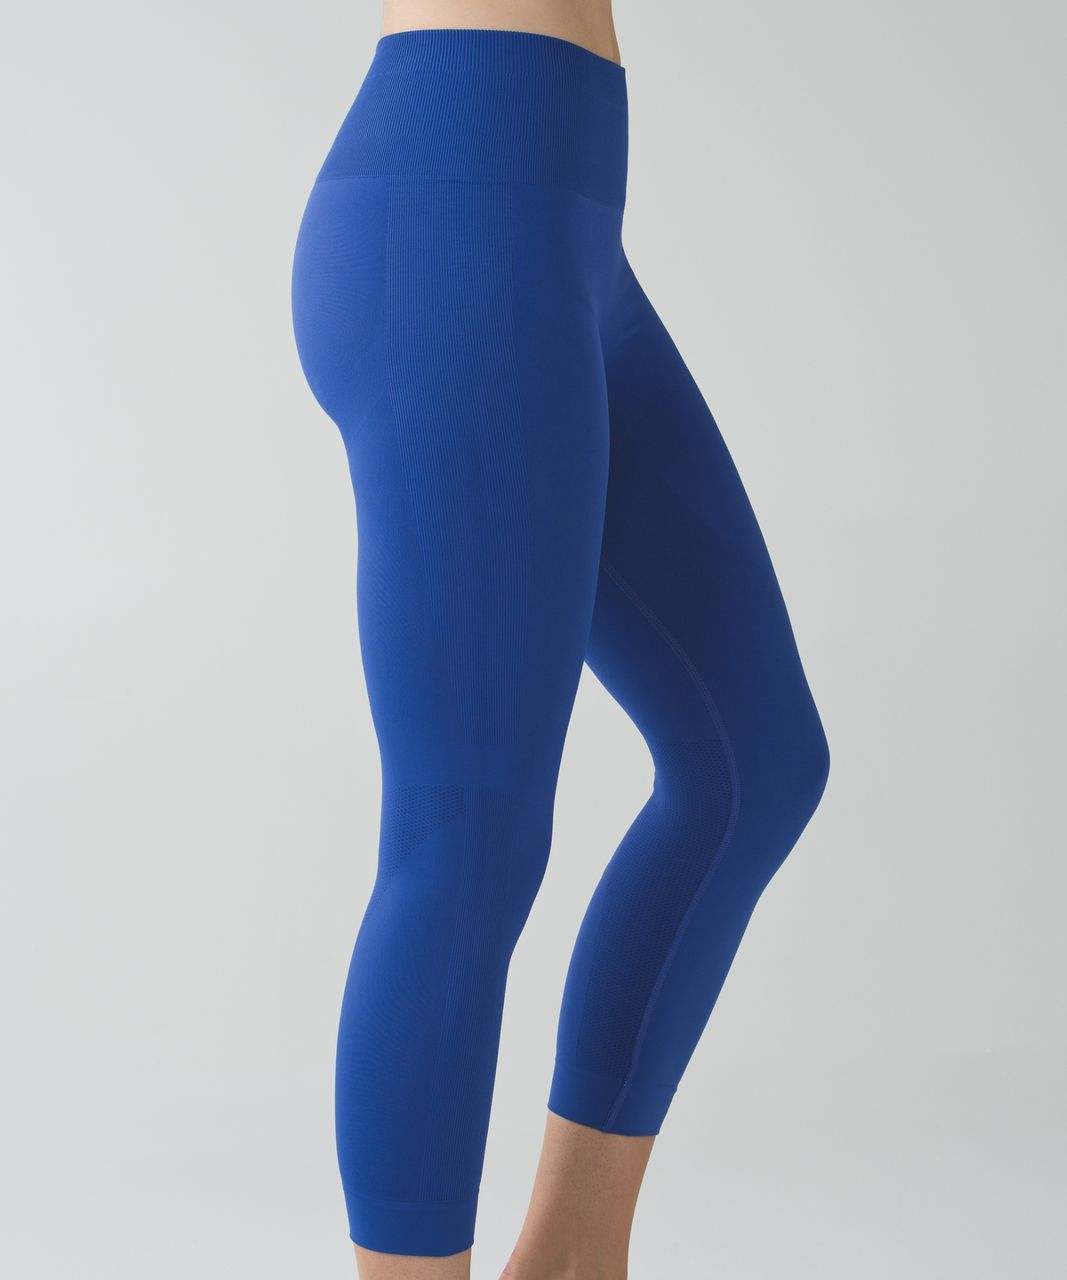 cde762fc2d8a8 Lululemon Zone In Crop - Sapphire Blue | Visit SecondaryBehavior on ...